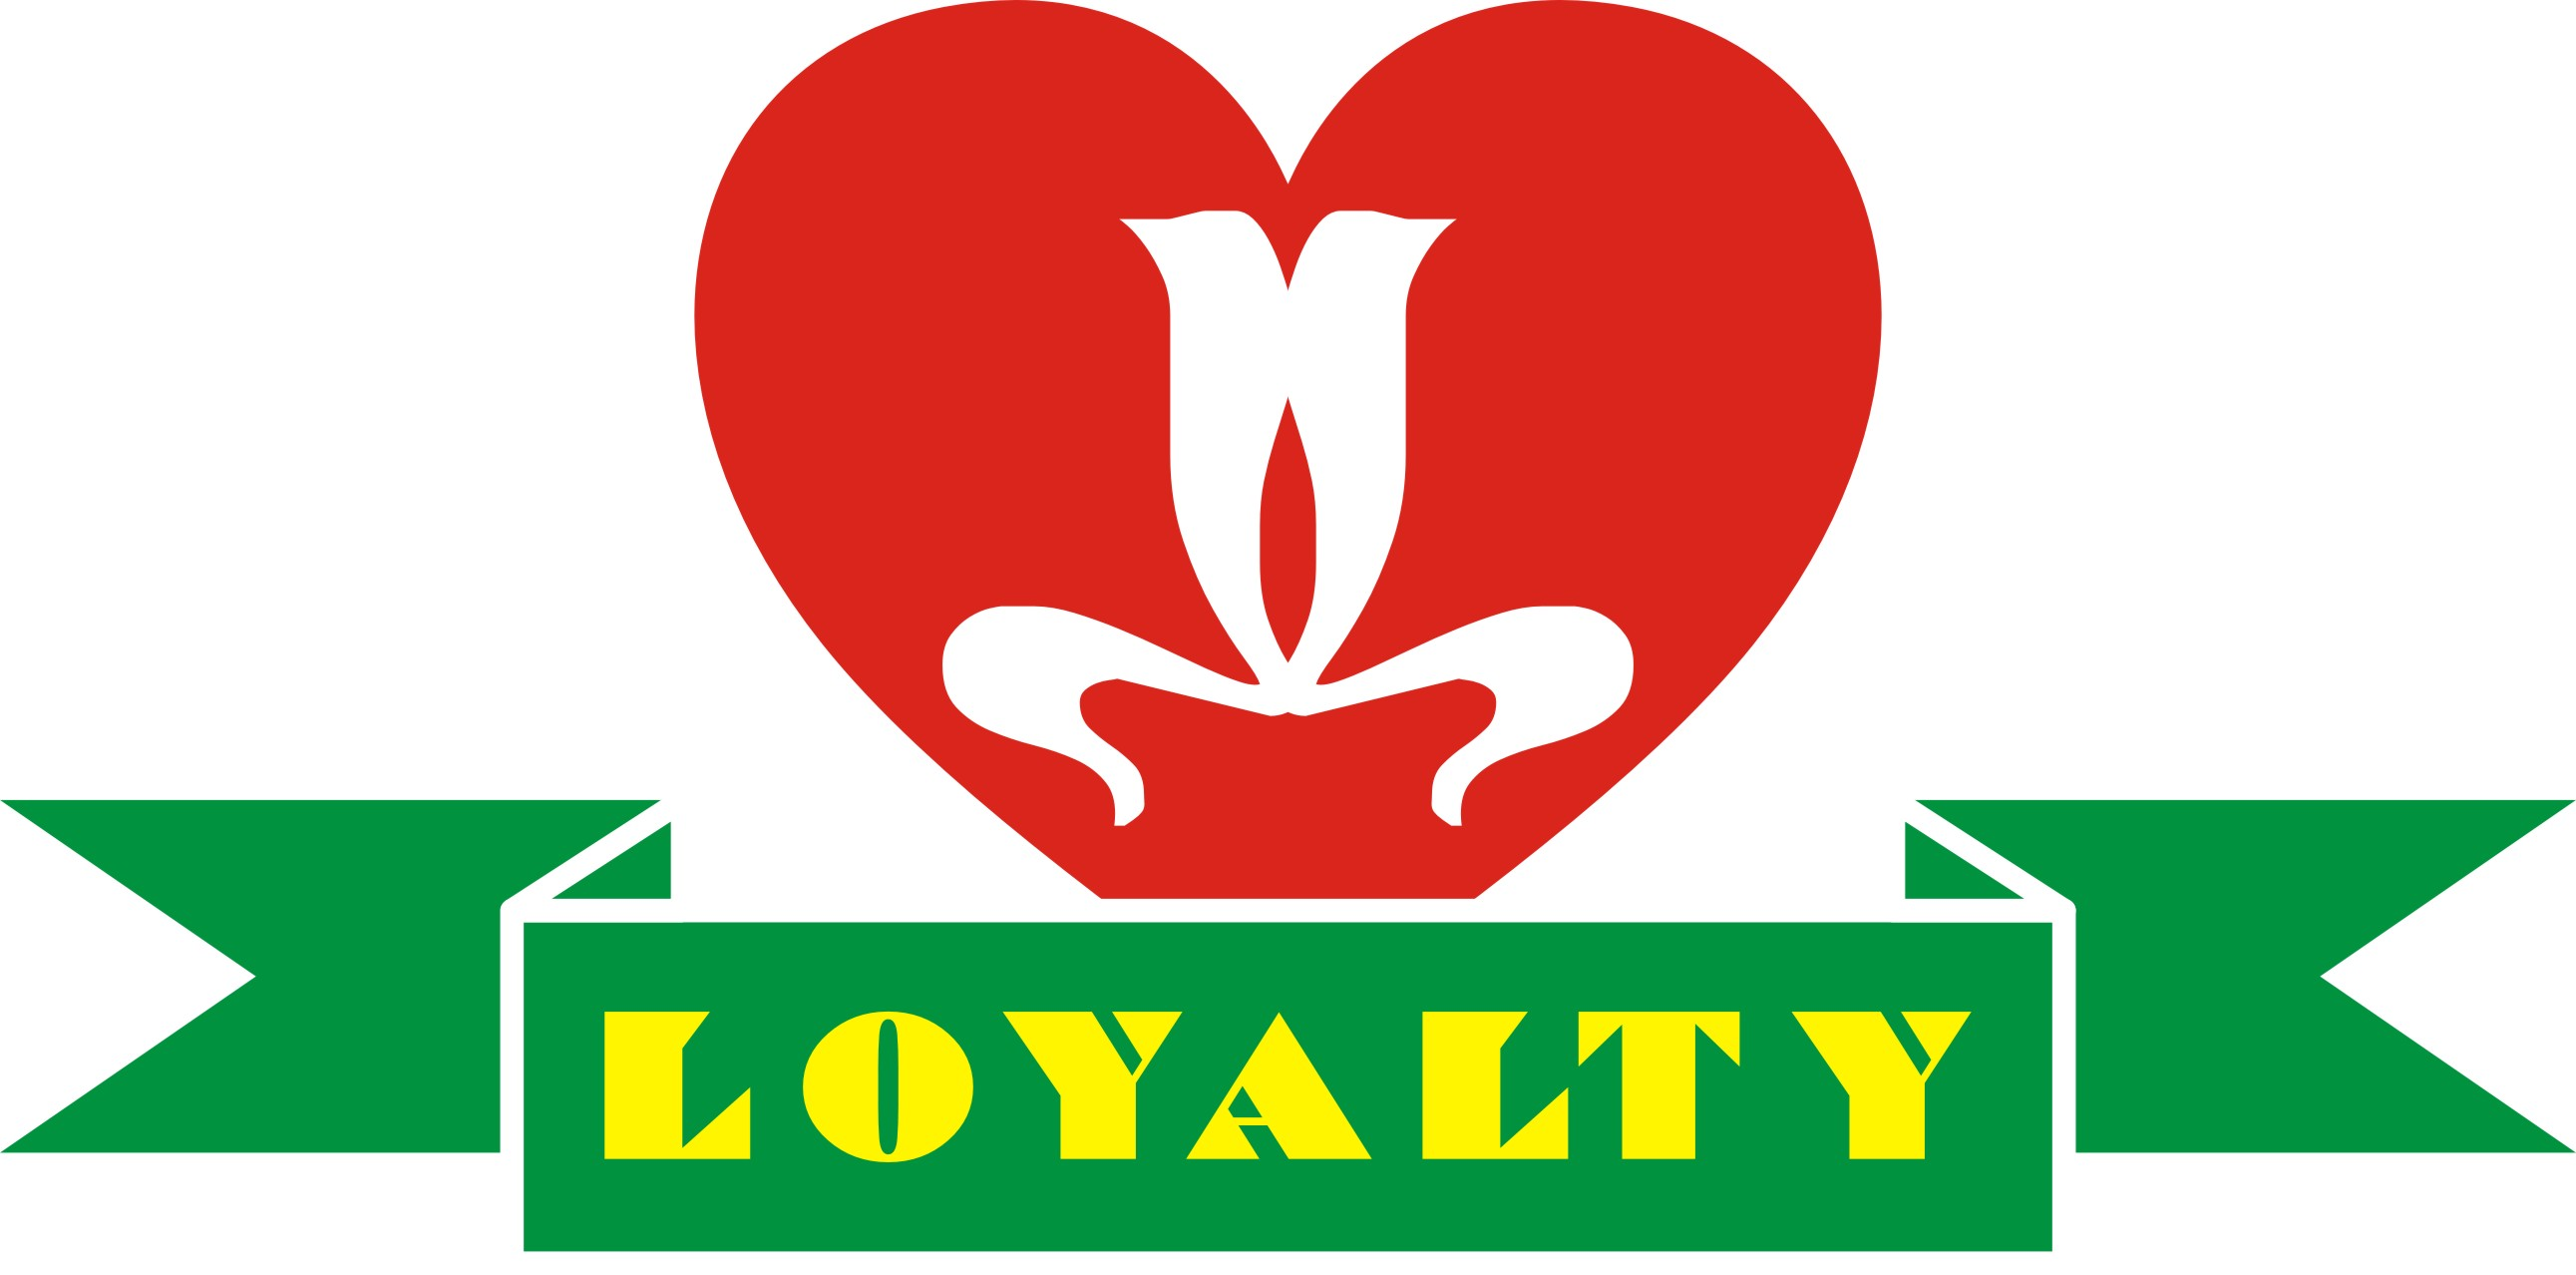 loyalty Electronics & gifts Co.ltd